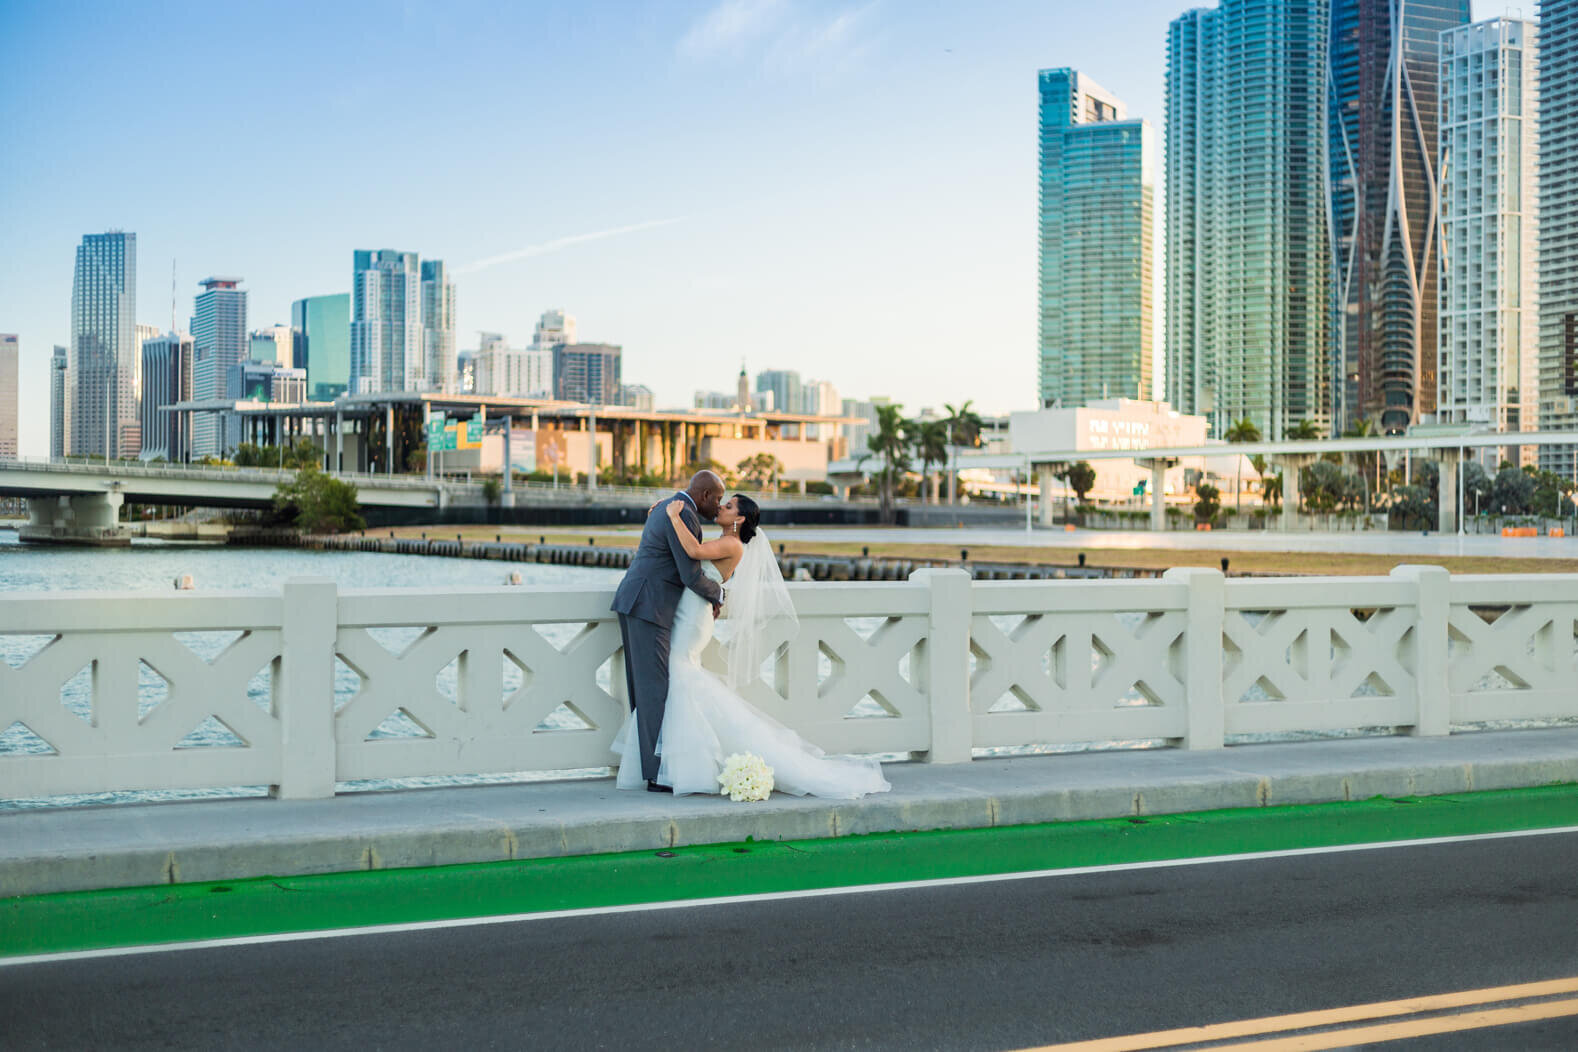 newlywed-bride-groom-couples-session-miami-biscayne-bay-21